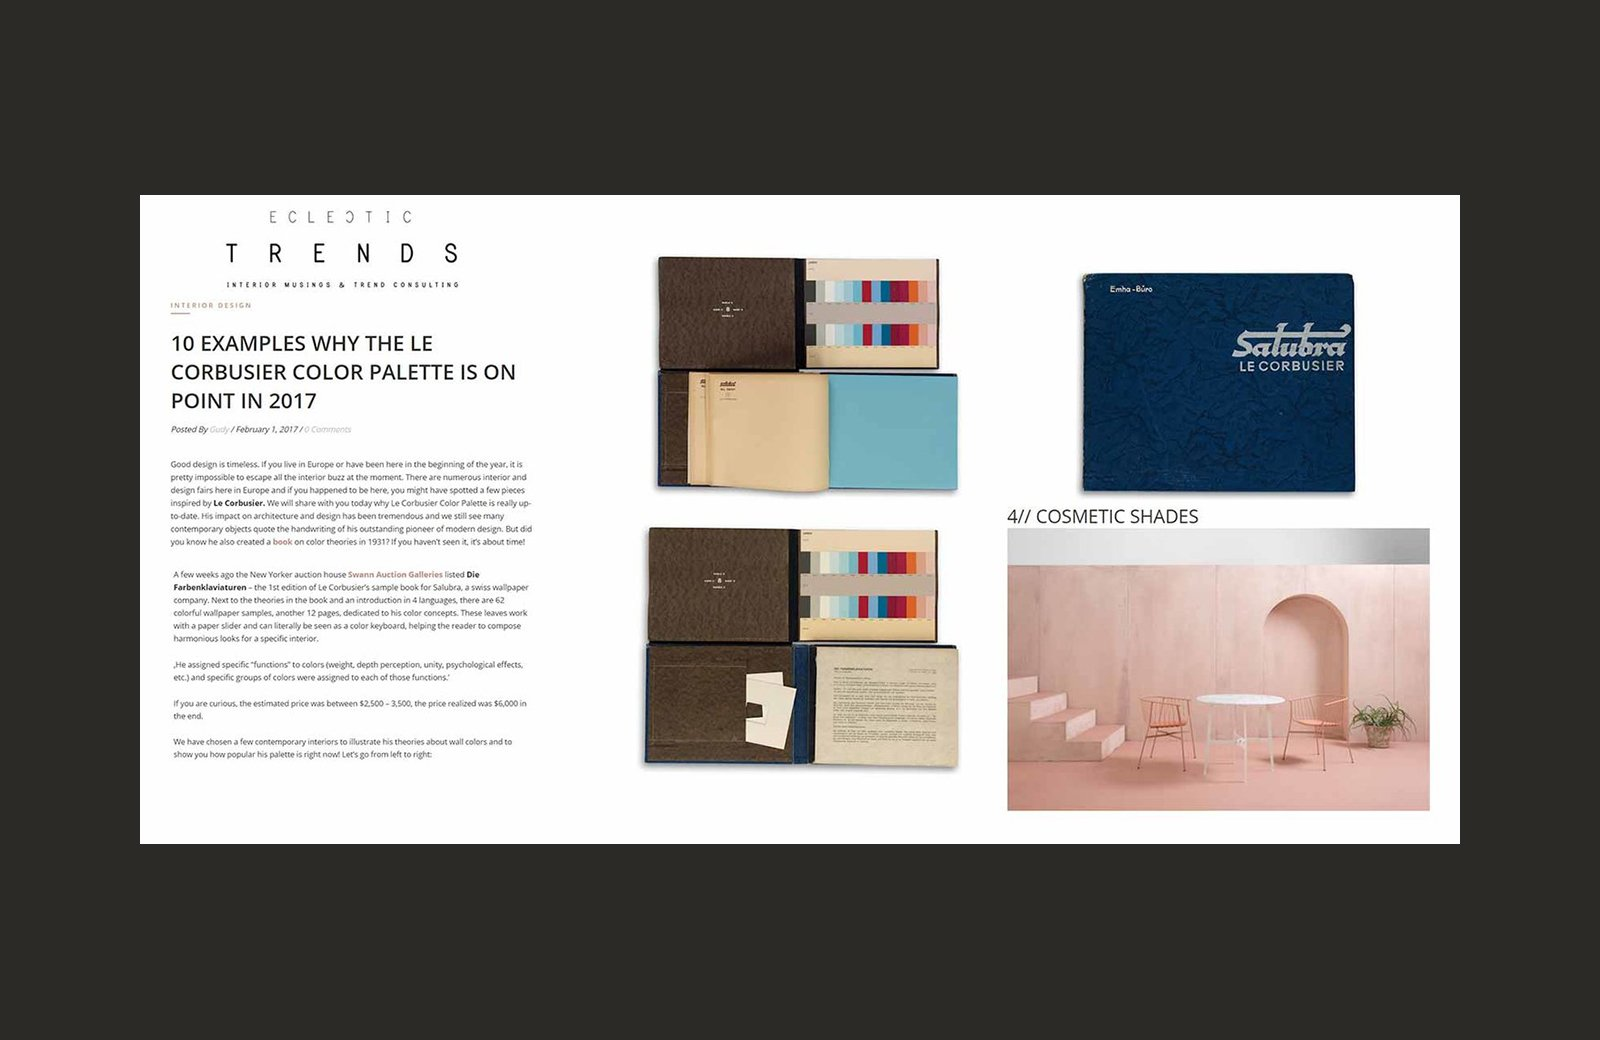 SP01's Parisi's table and chee stool featured in Final, Trends feature.